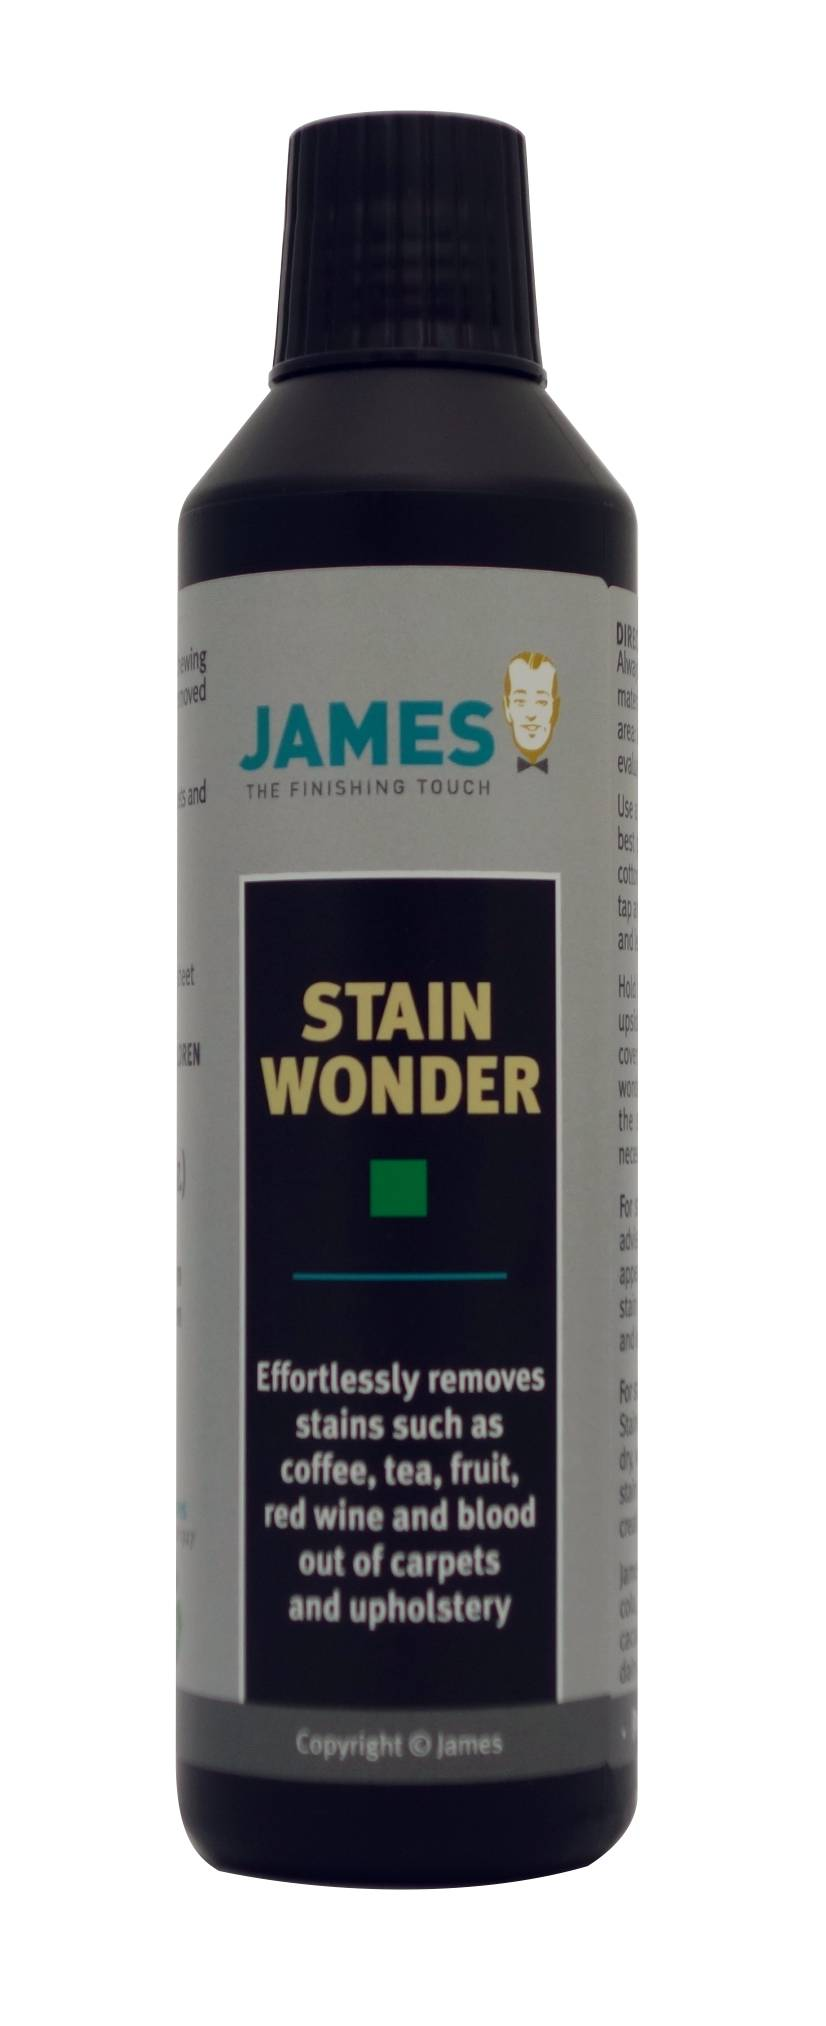 James Cleaner - James Stain Wonder - The 1 component you'll need most in the James Starter Set - your Stain First Aid Kit - to eliminate nearly all of your stains